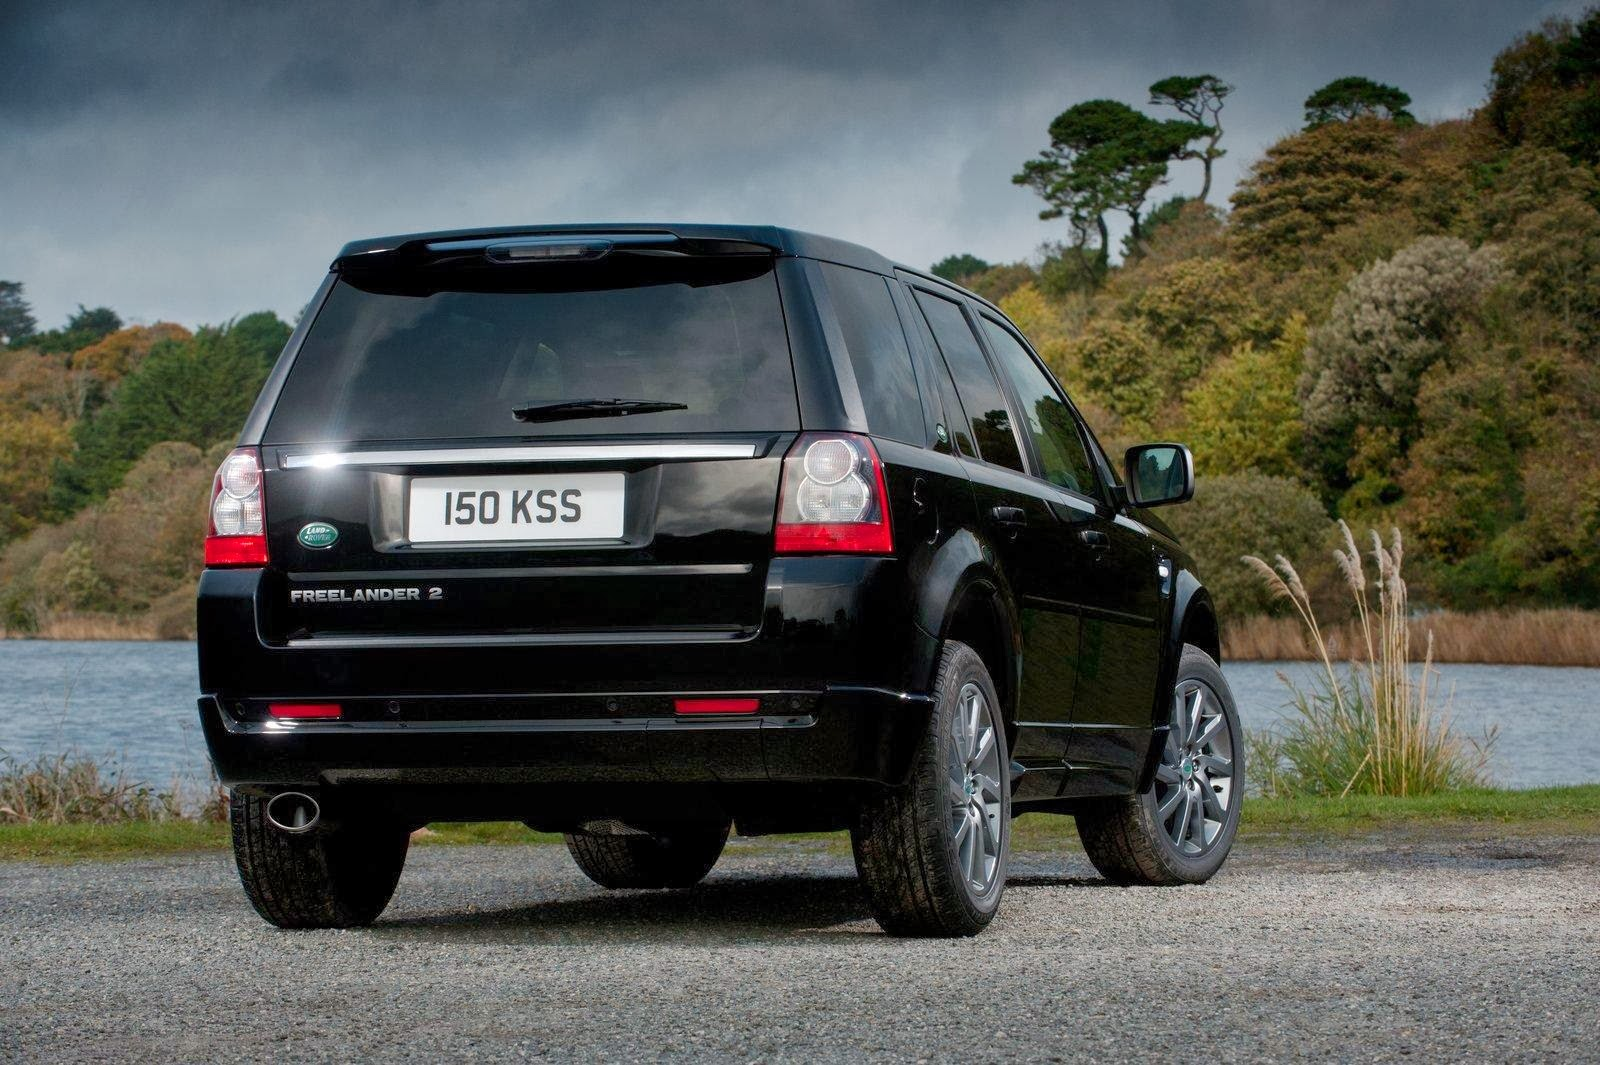 land rover freelander 2 pictures 2014 just welcome to automotive. Black Bedroom Furniture Sets. Home Design Ideas